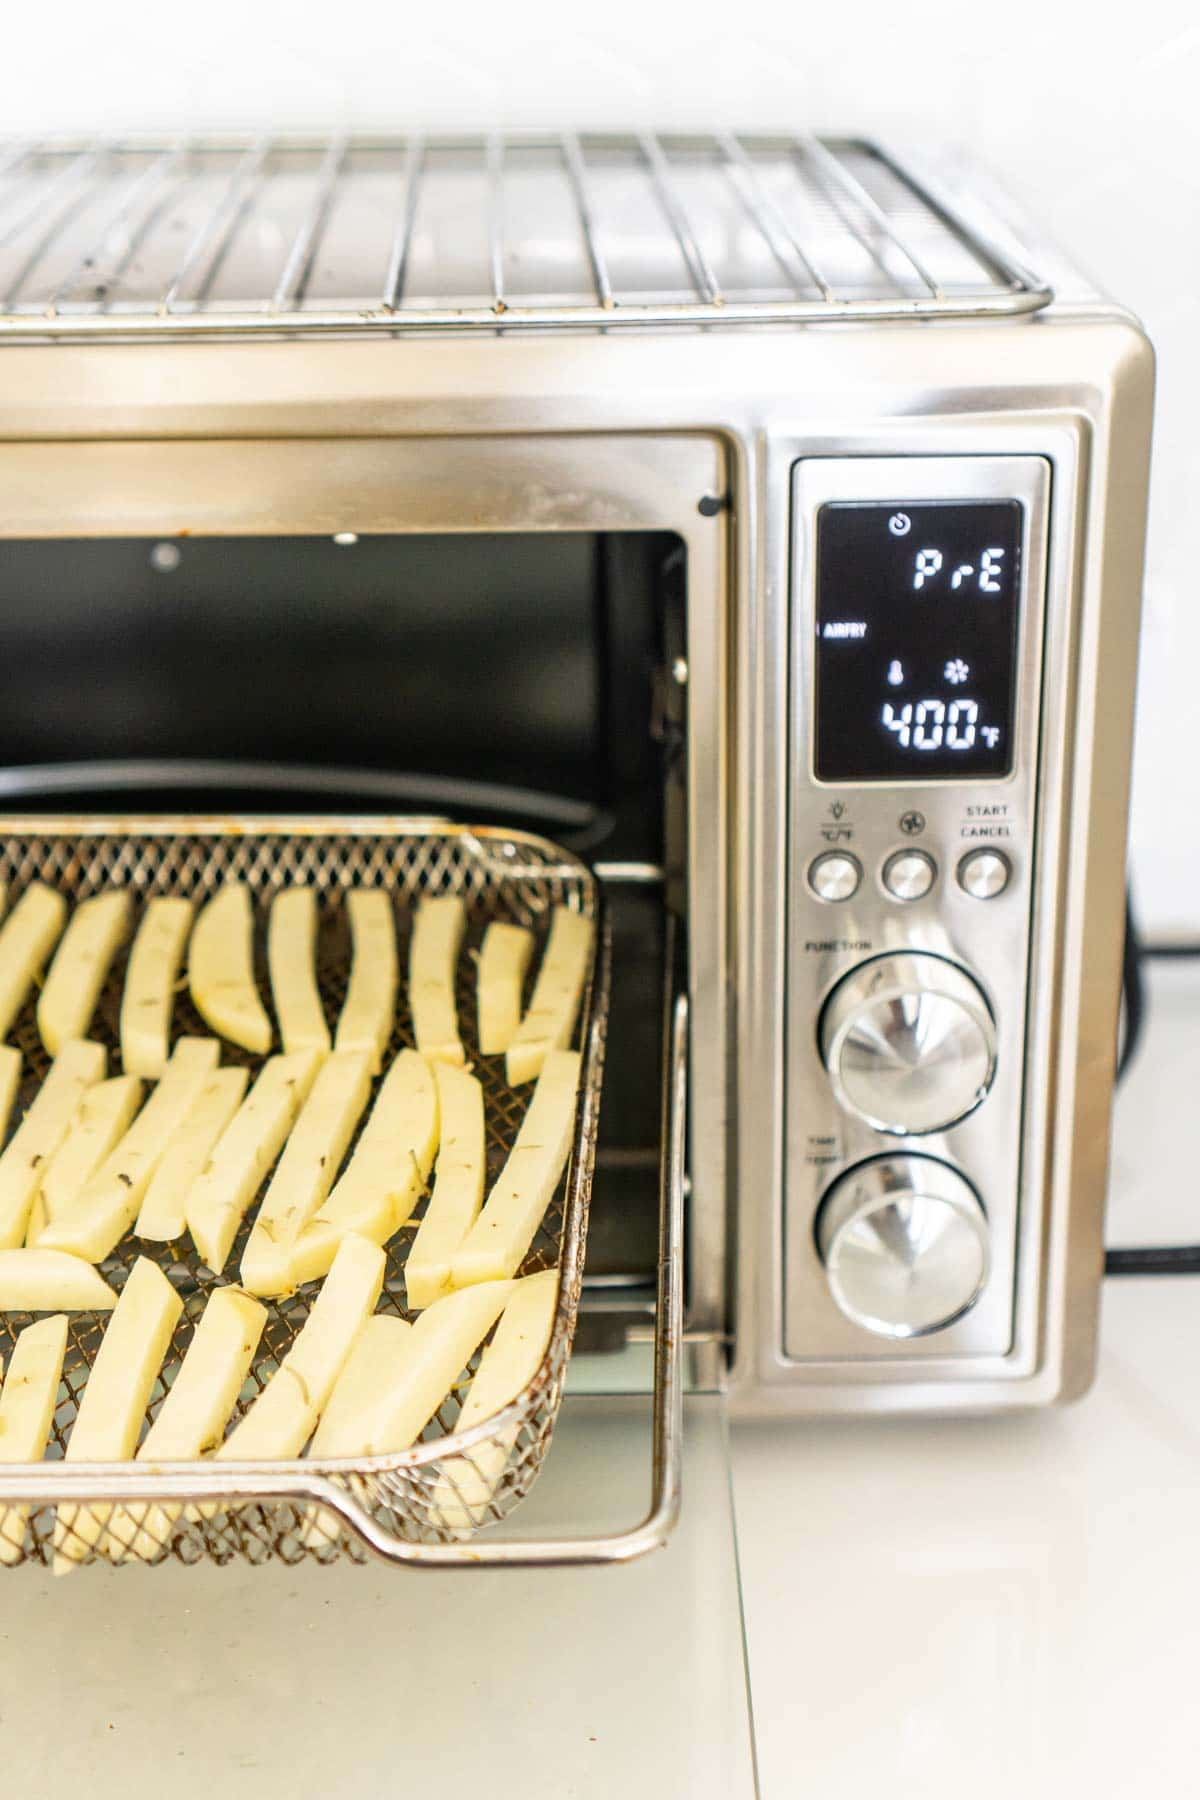 A cosori toaster oven air fryer with a rack full of cut potatoes